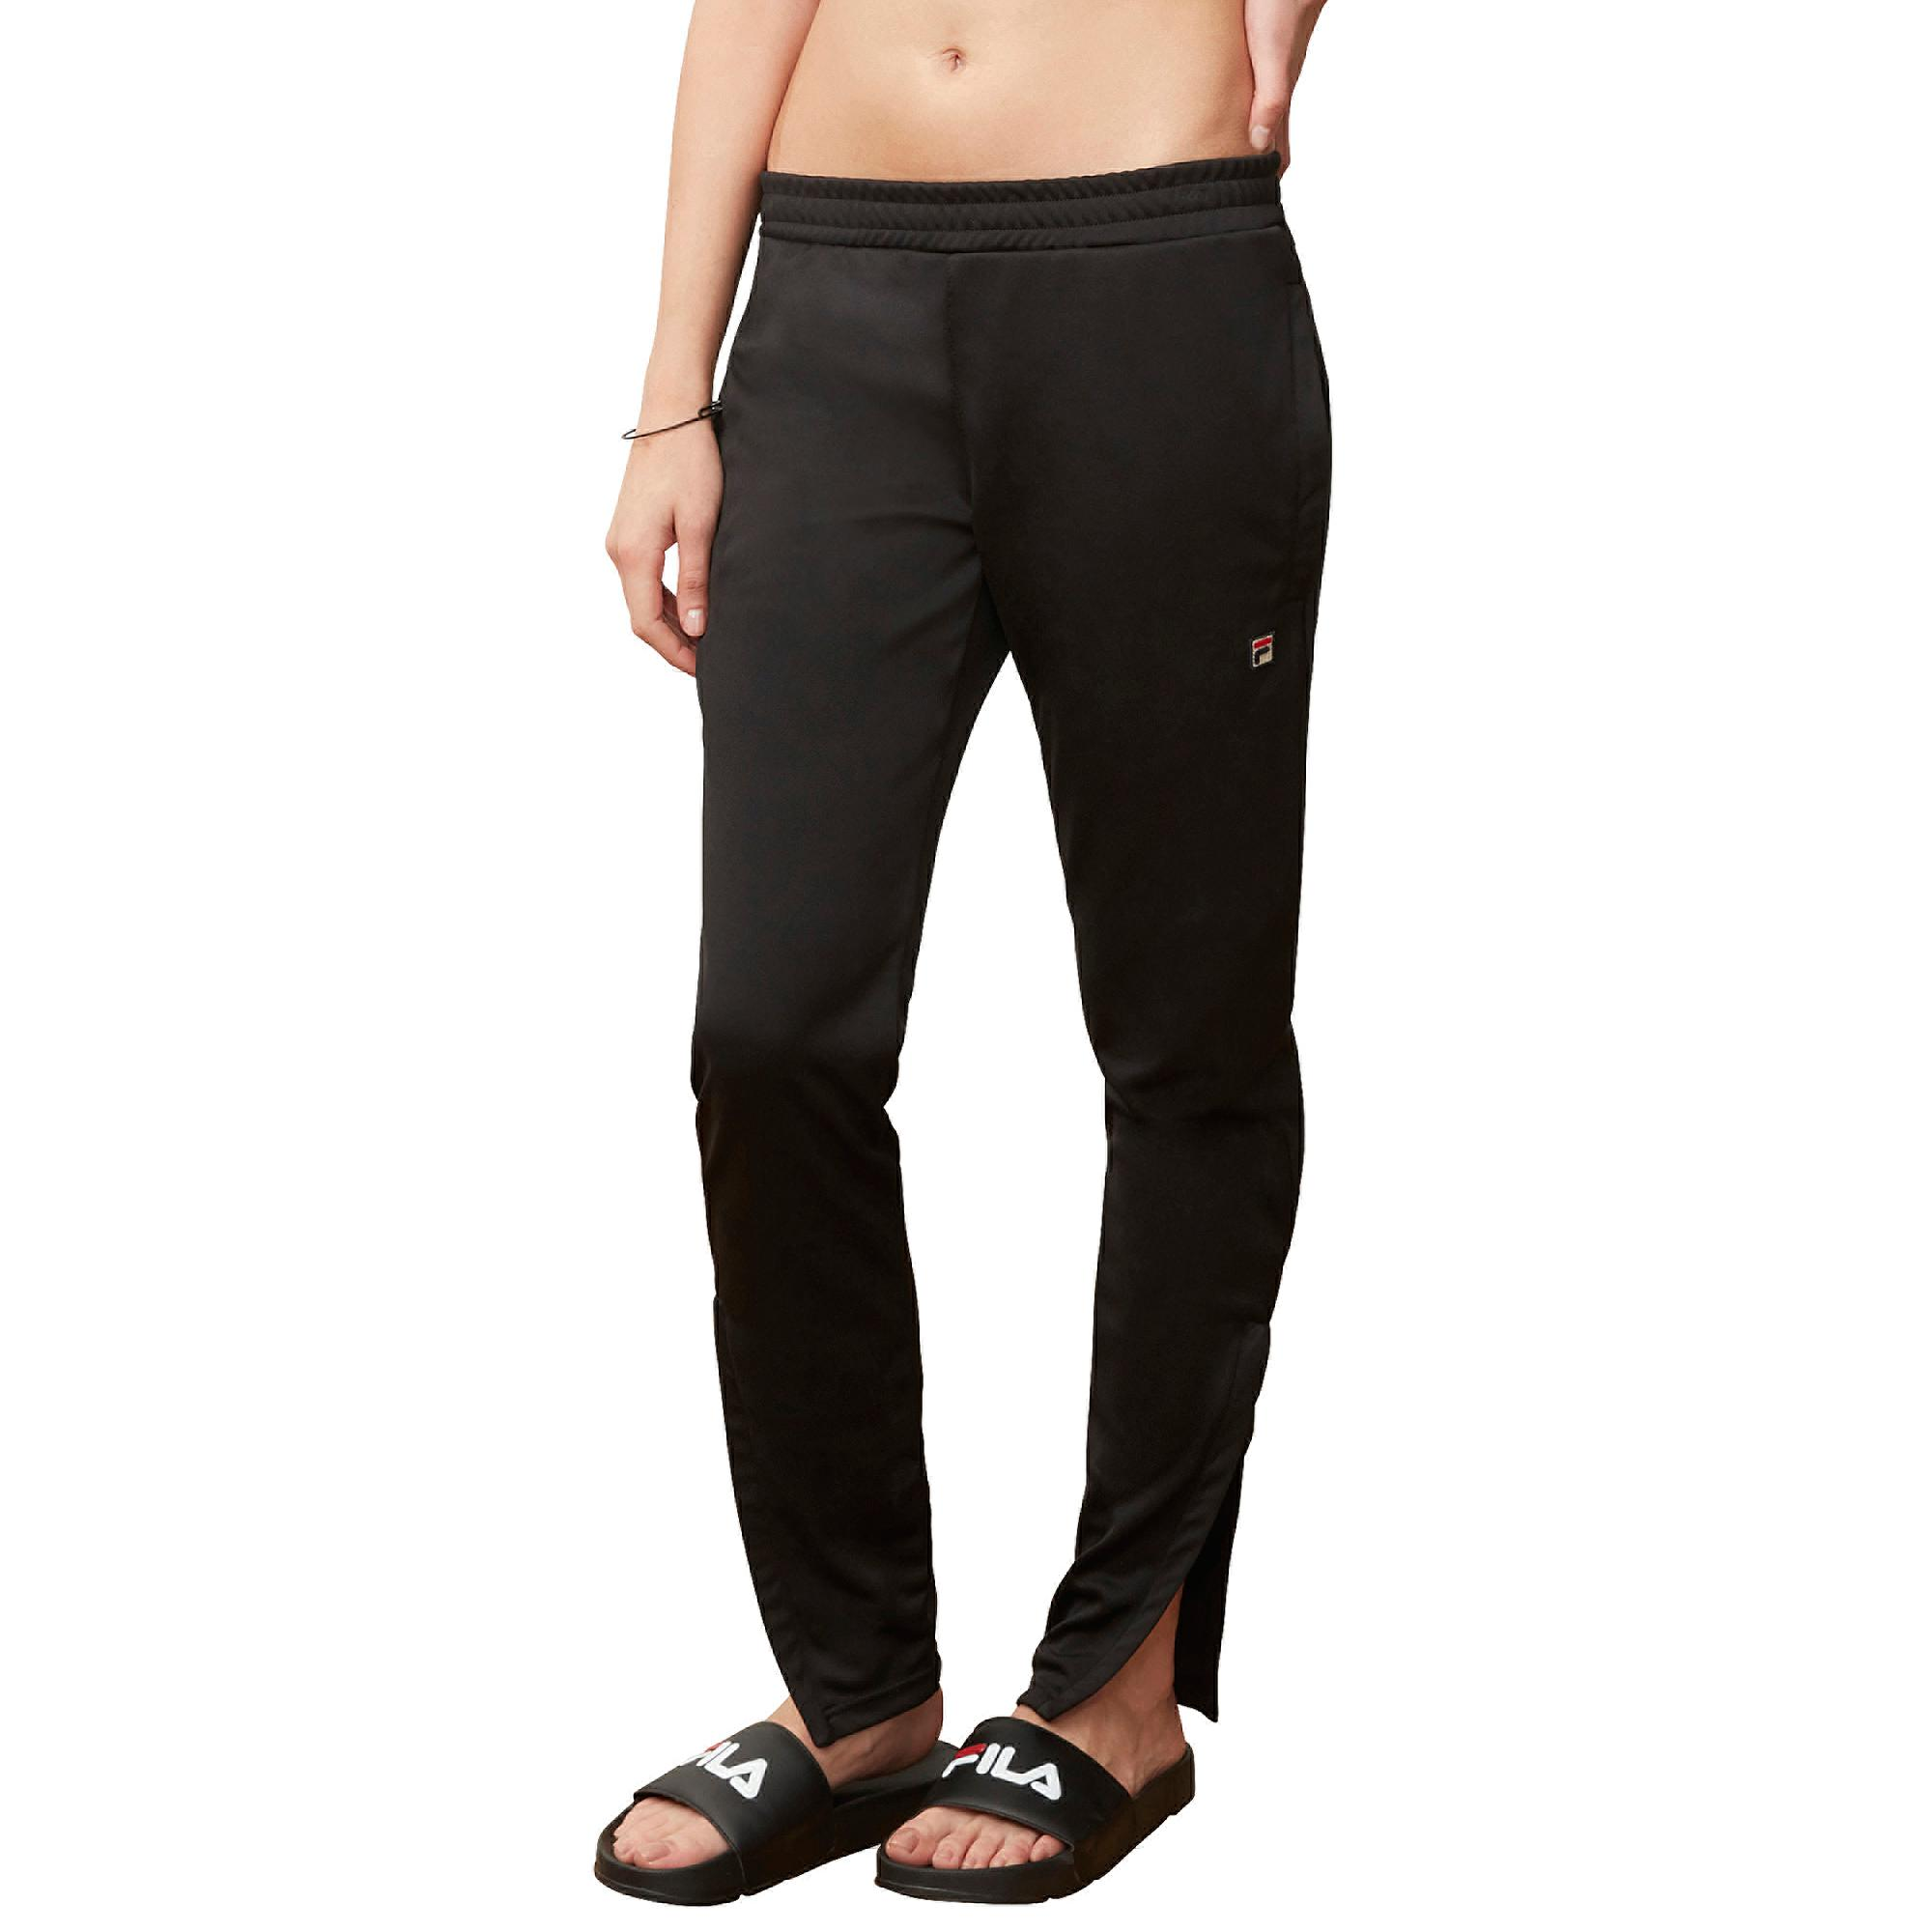 2be43183a82f9 Lyst - Fila Lola Classic Trackster Pants in Black for Men